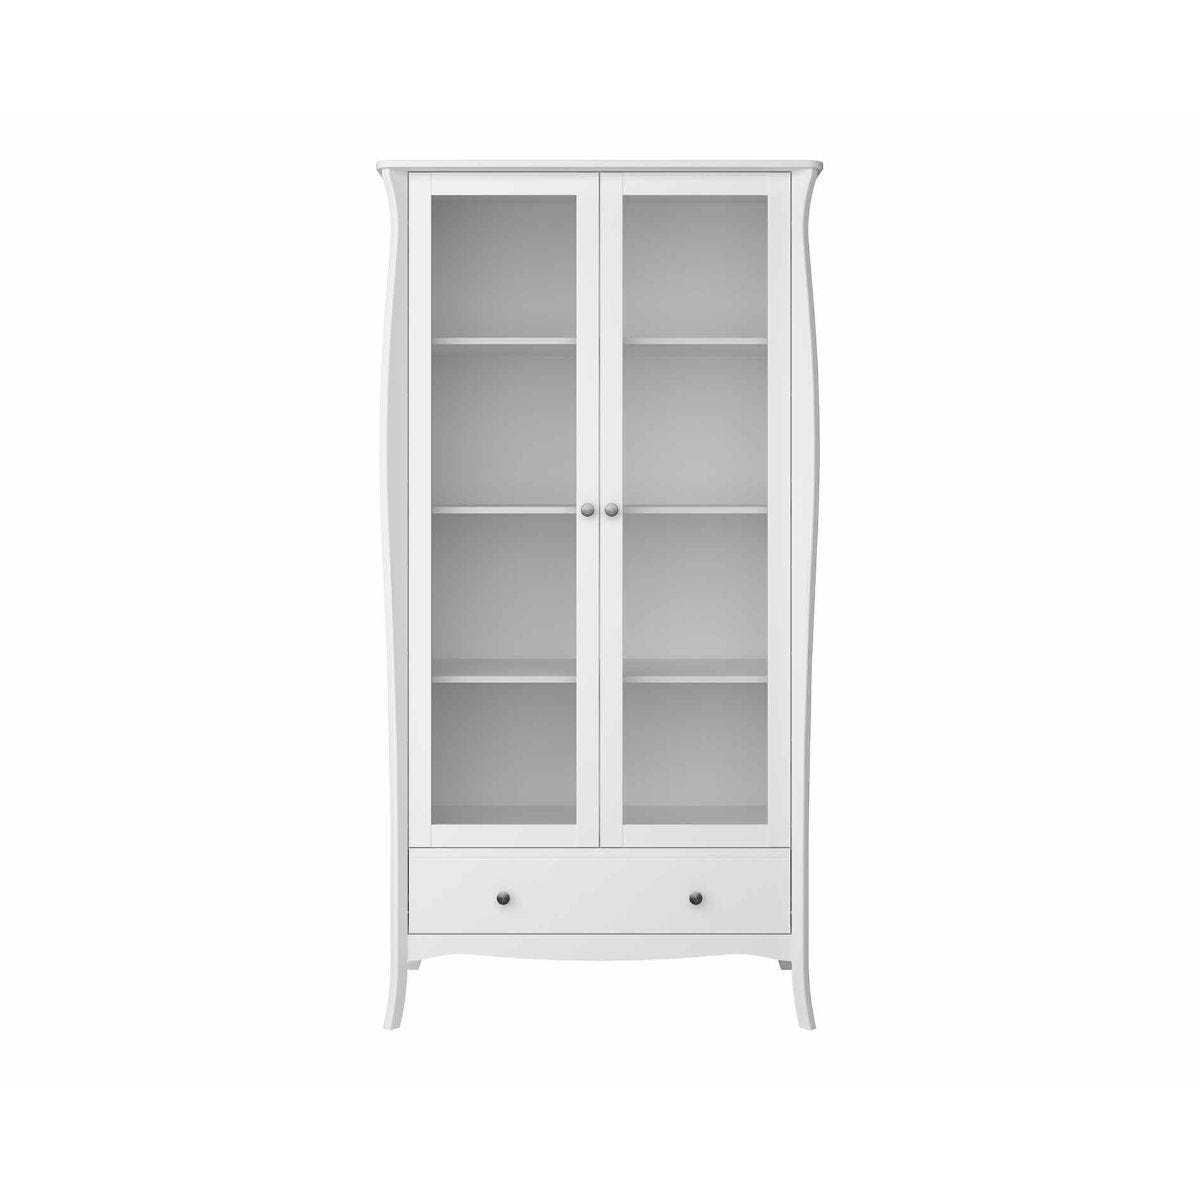 Steens Baroque Glazed Display Cabinet, White